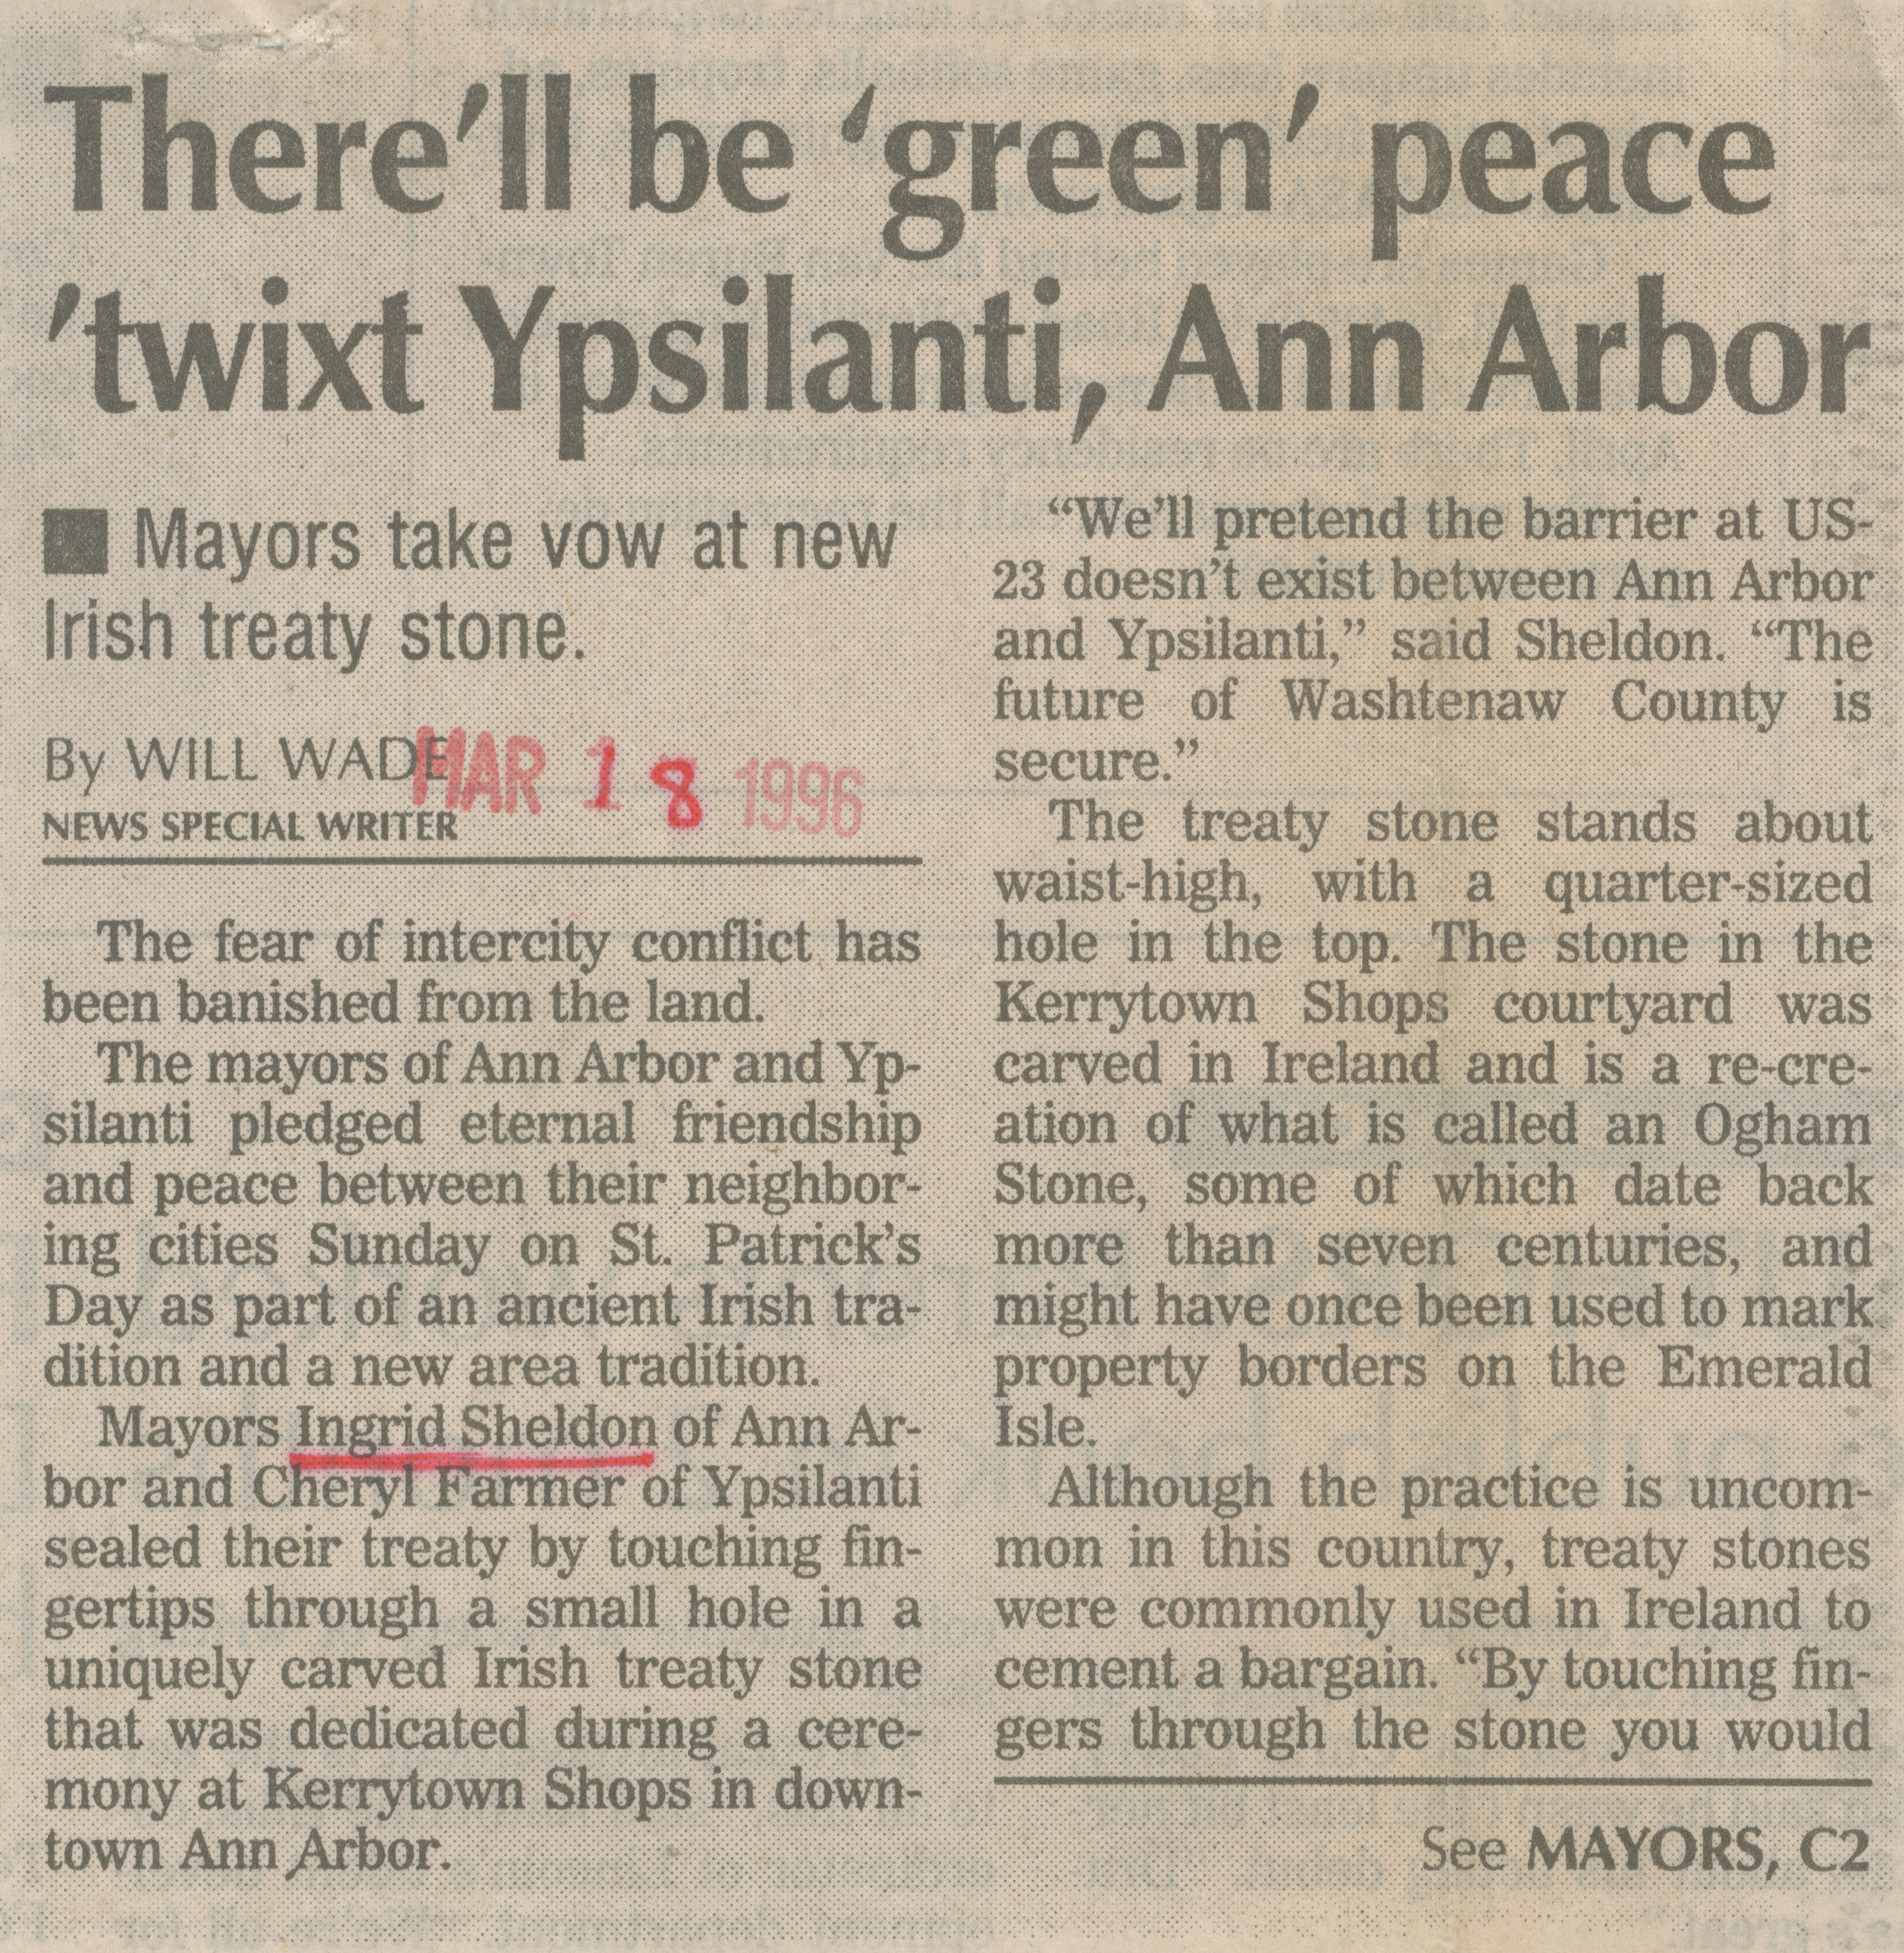 There'll be 'green' peace 'twixt Ypsilanti, Ann Arbor image